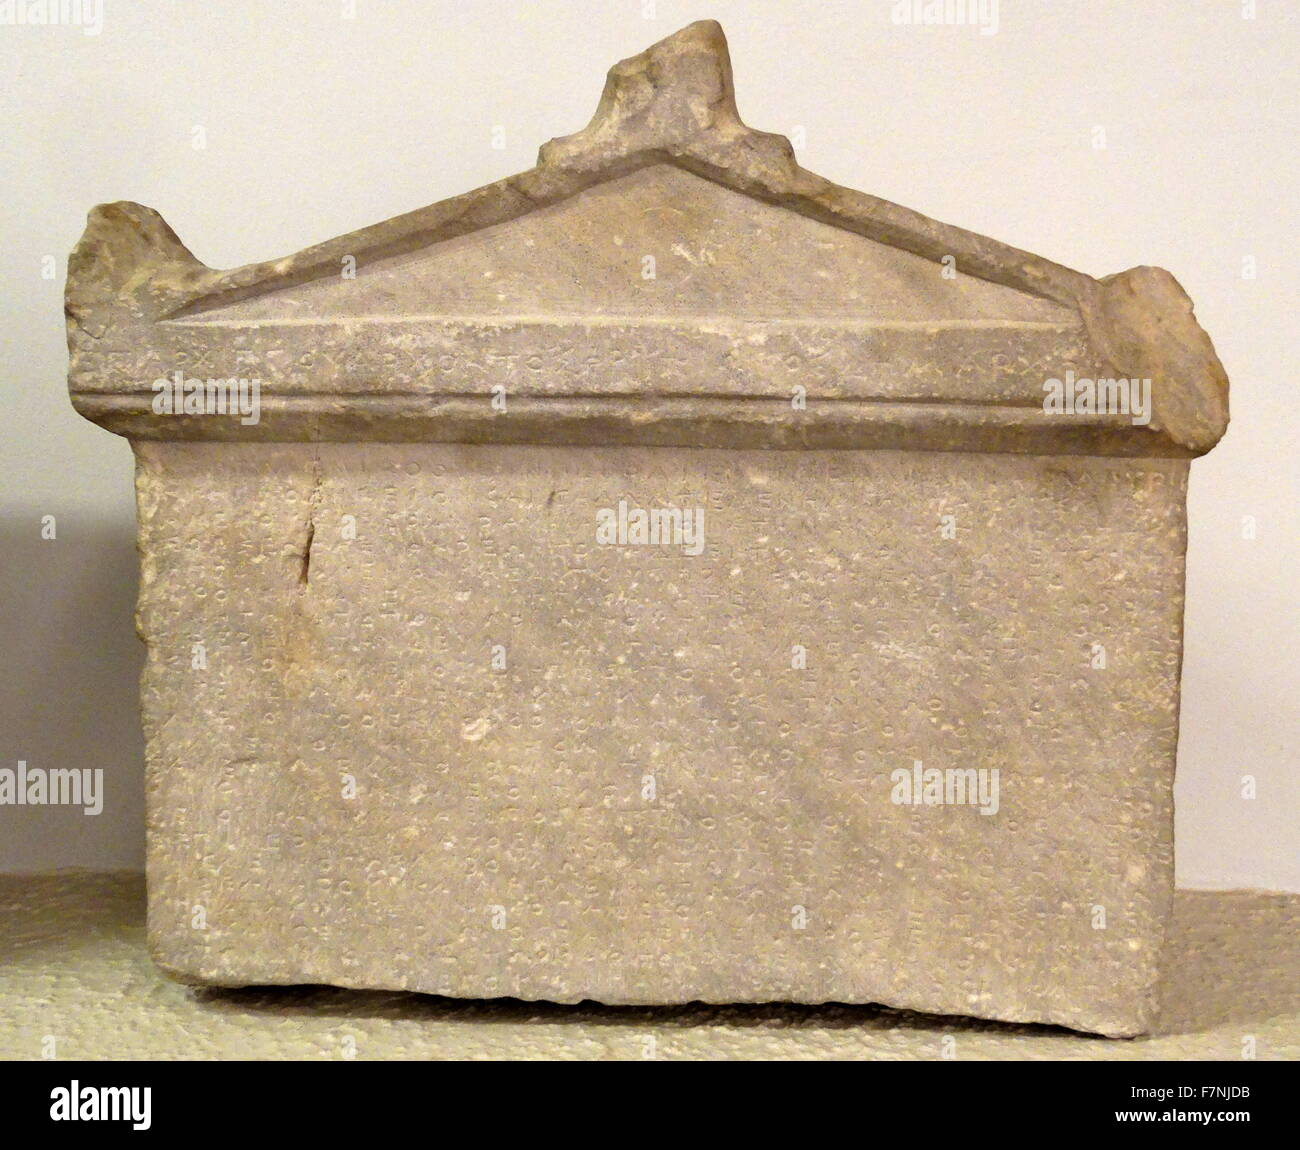 Stone slab inscribed with regulations concerning the lease of land in Piraeus. Dated in the Archonship of Archippos. - Stock Image